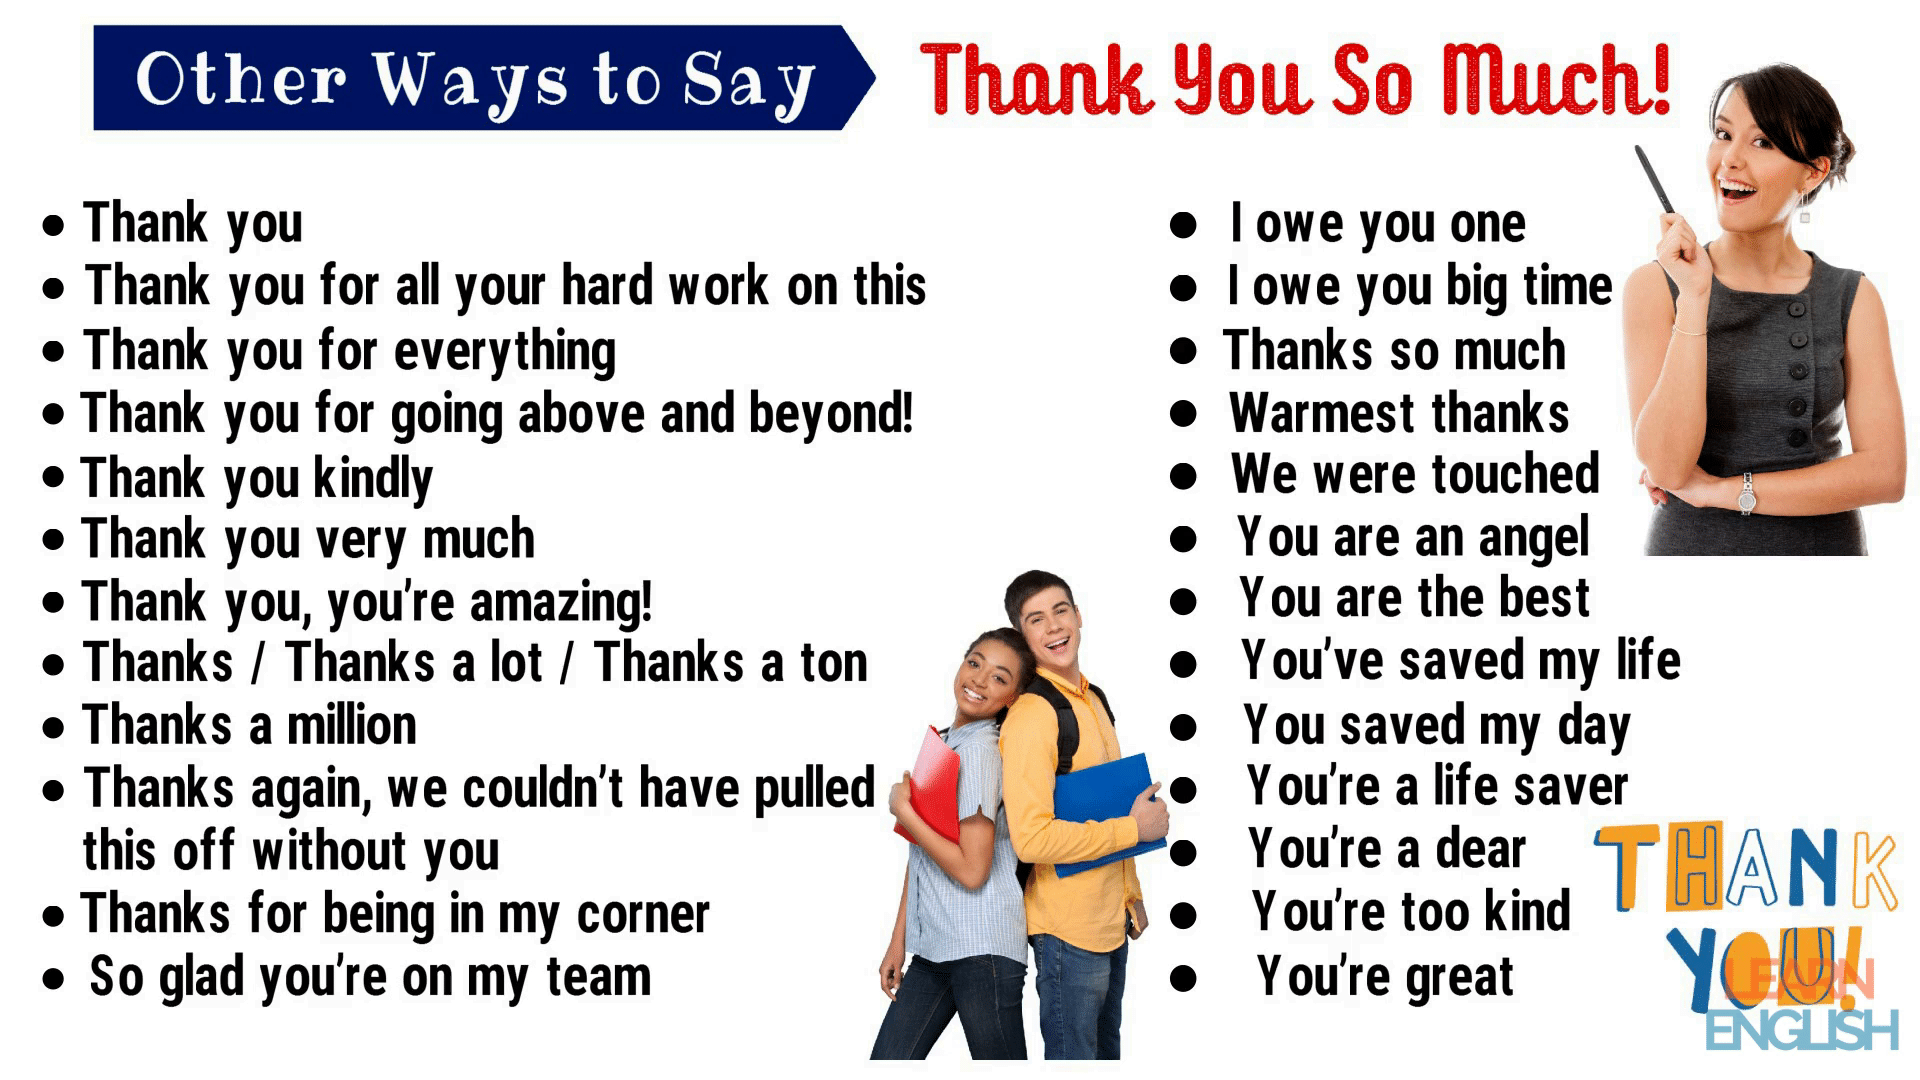 Thank You Synonym | 45+ Powerful Synonyms for Thank You for ESL Learners 1